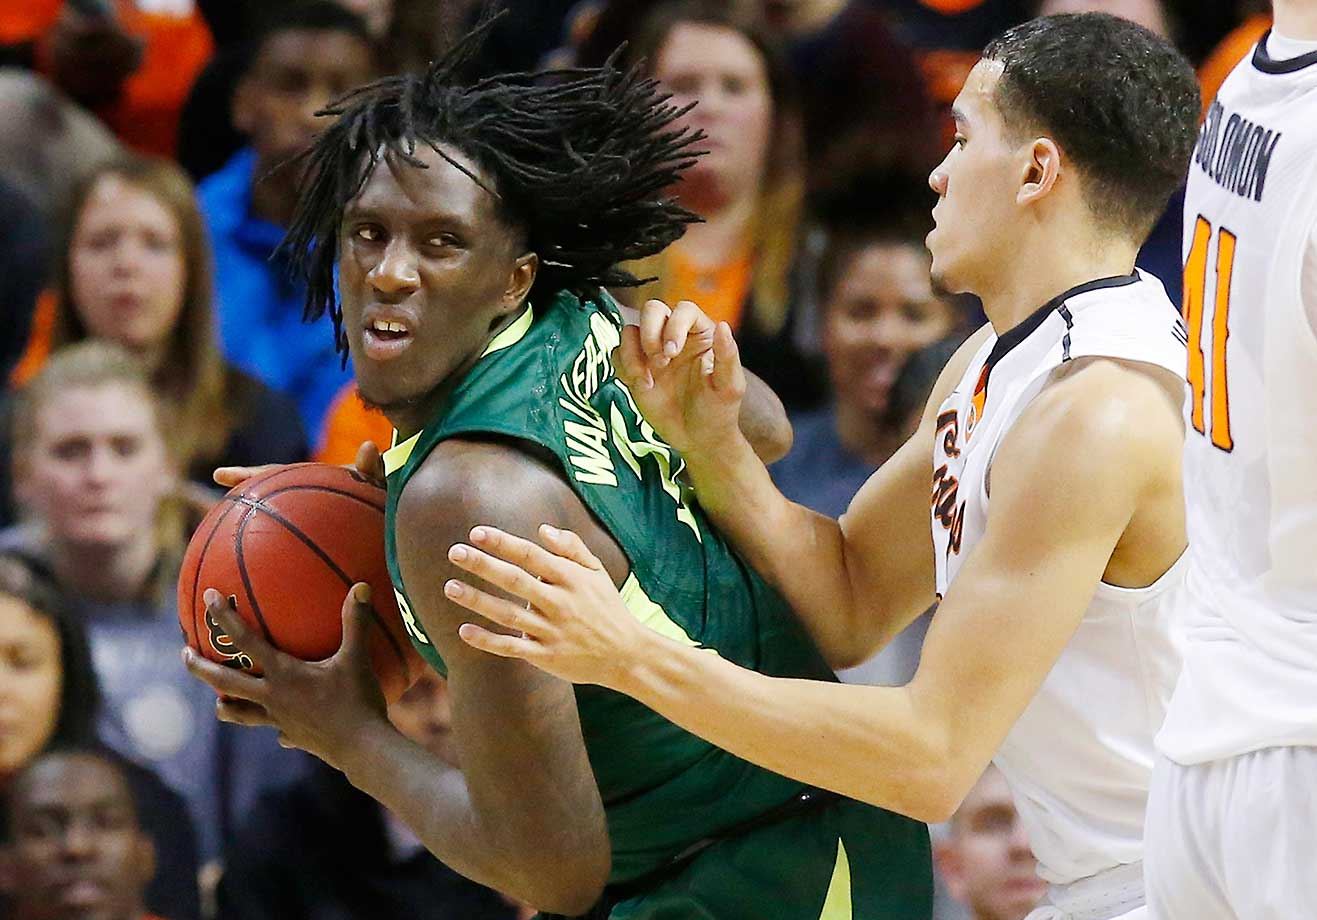 Baylor forward Taurean Prince drives against Oklahoma State guard Jeffrey Carroll in Stillwater, Okla.